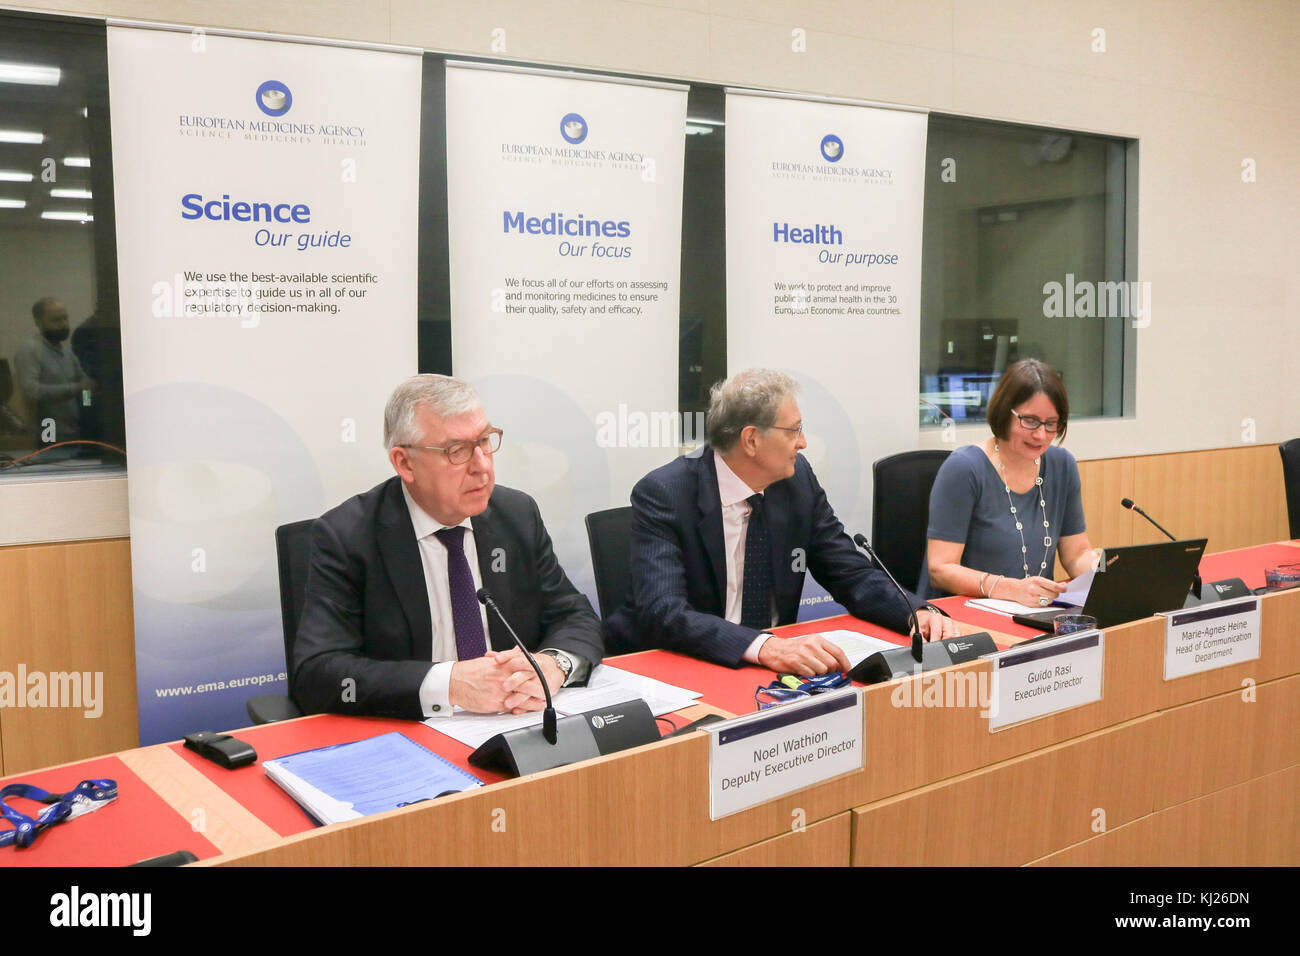 London, UK. 21st Nov, 2017. A press briefing by Guido Rasi, Executive Director of EMA and Noel Whation Deputy Executive Stock Photo